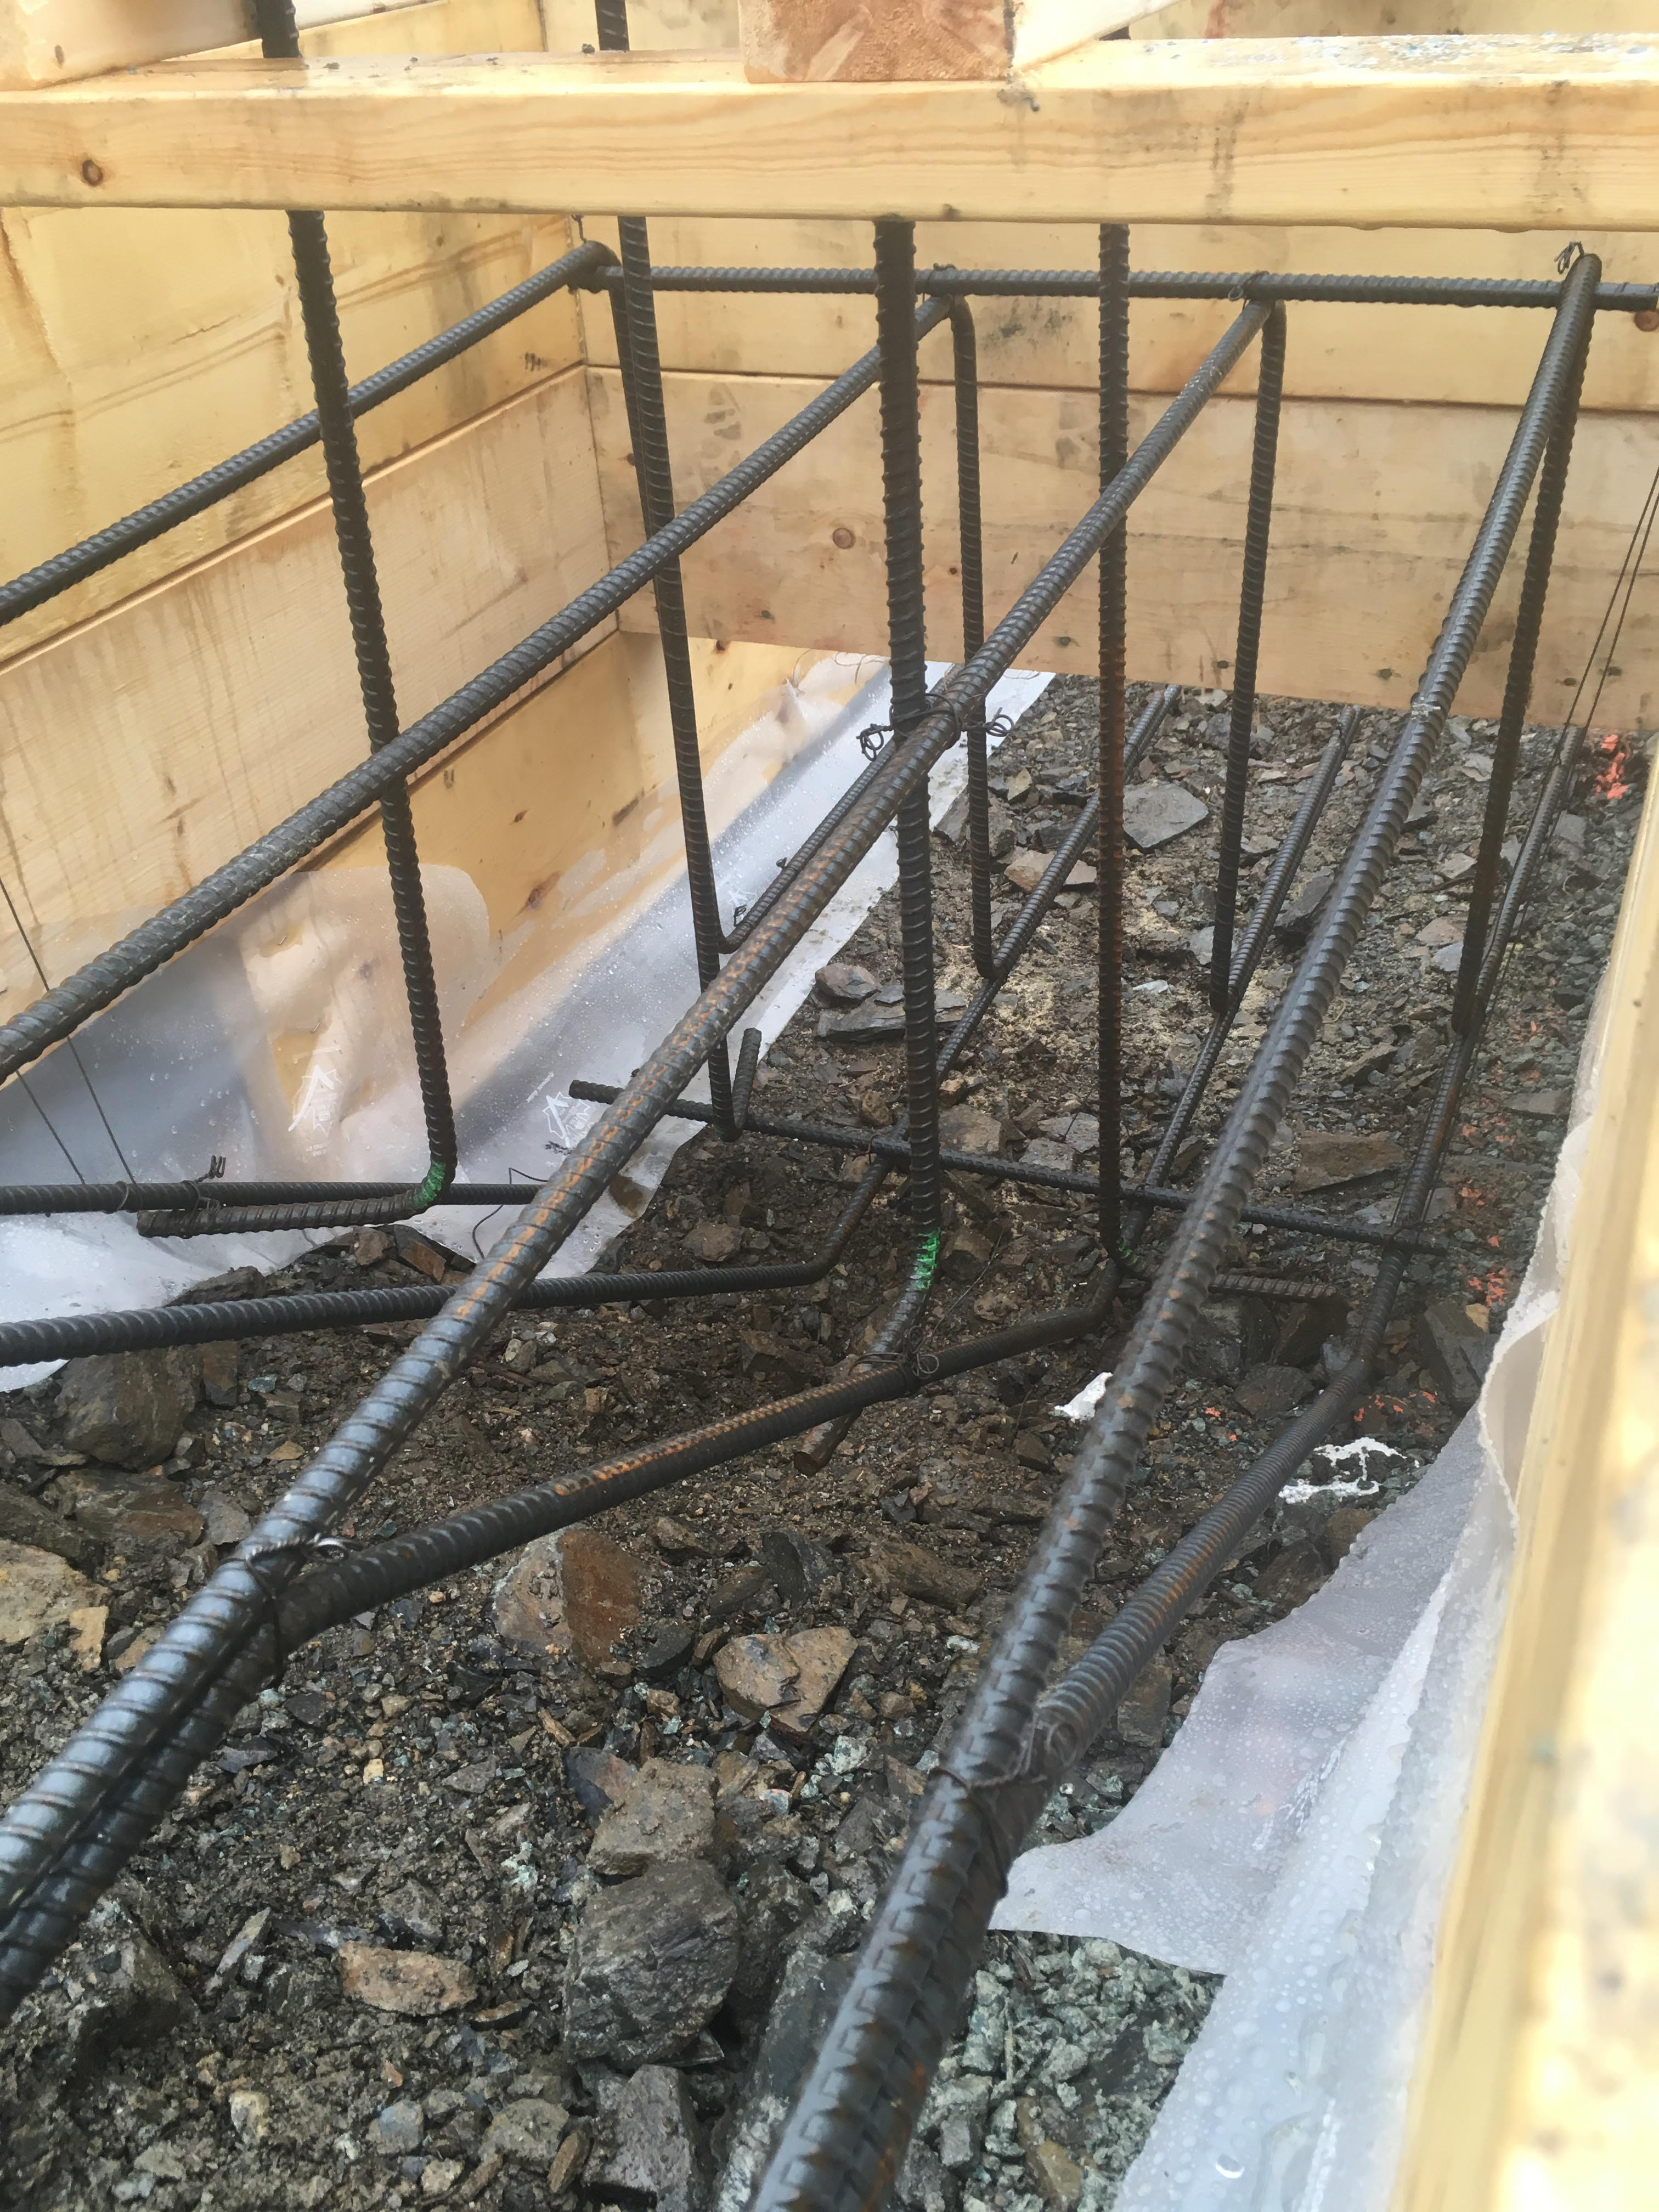 Pound 4 Pound, Framing and Forming. Steel Forming